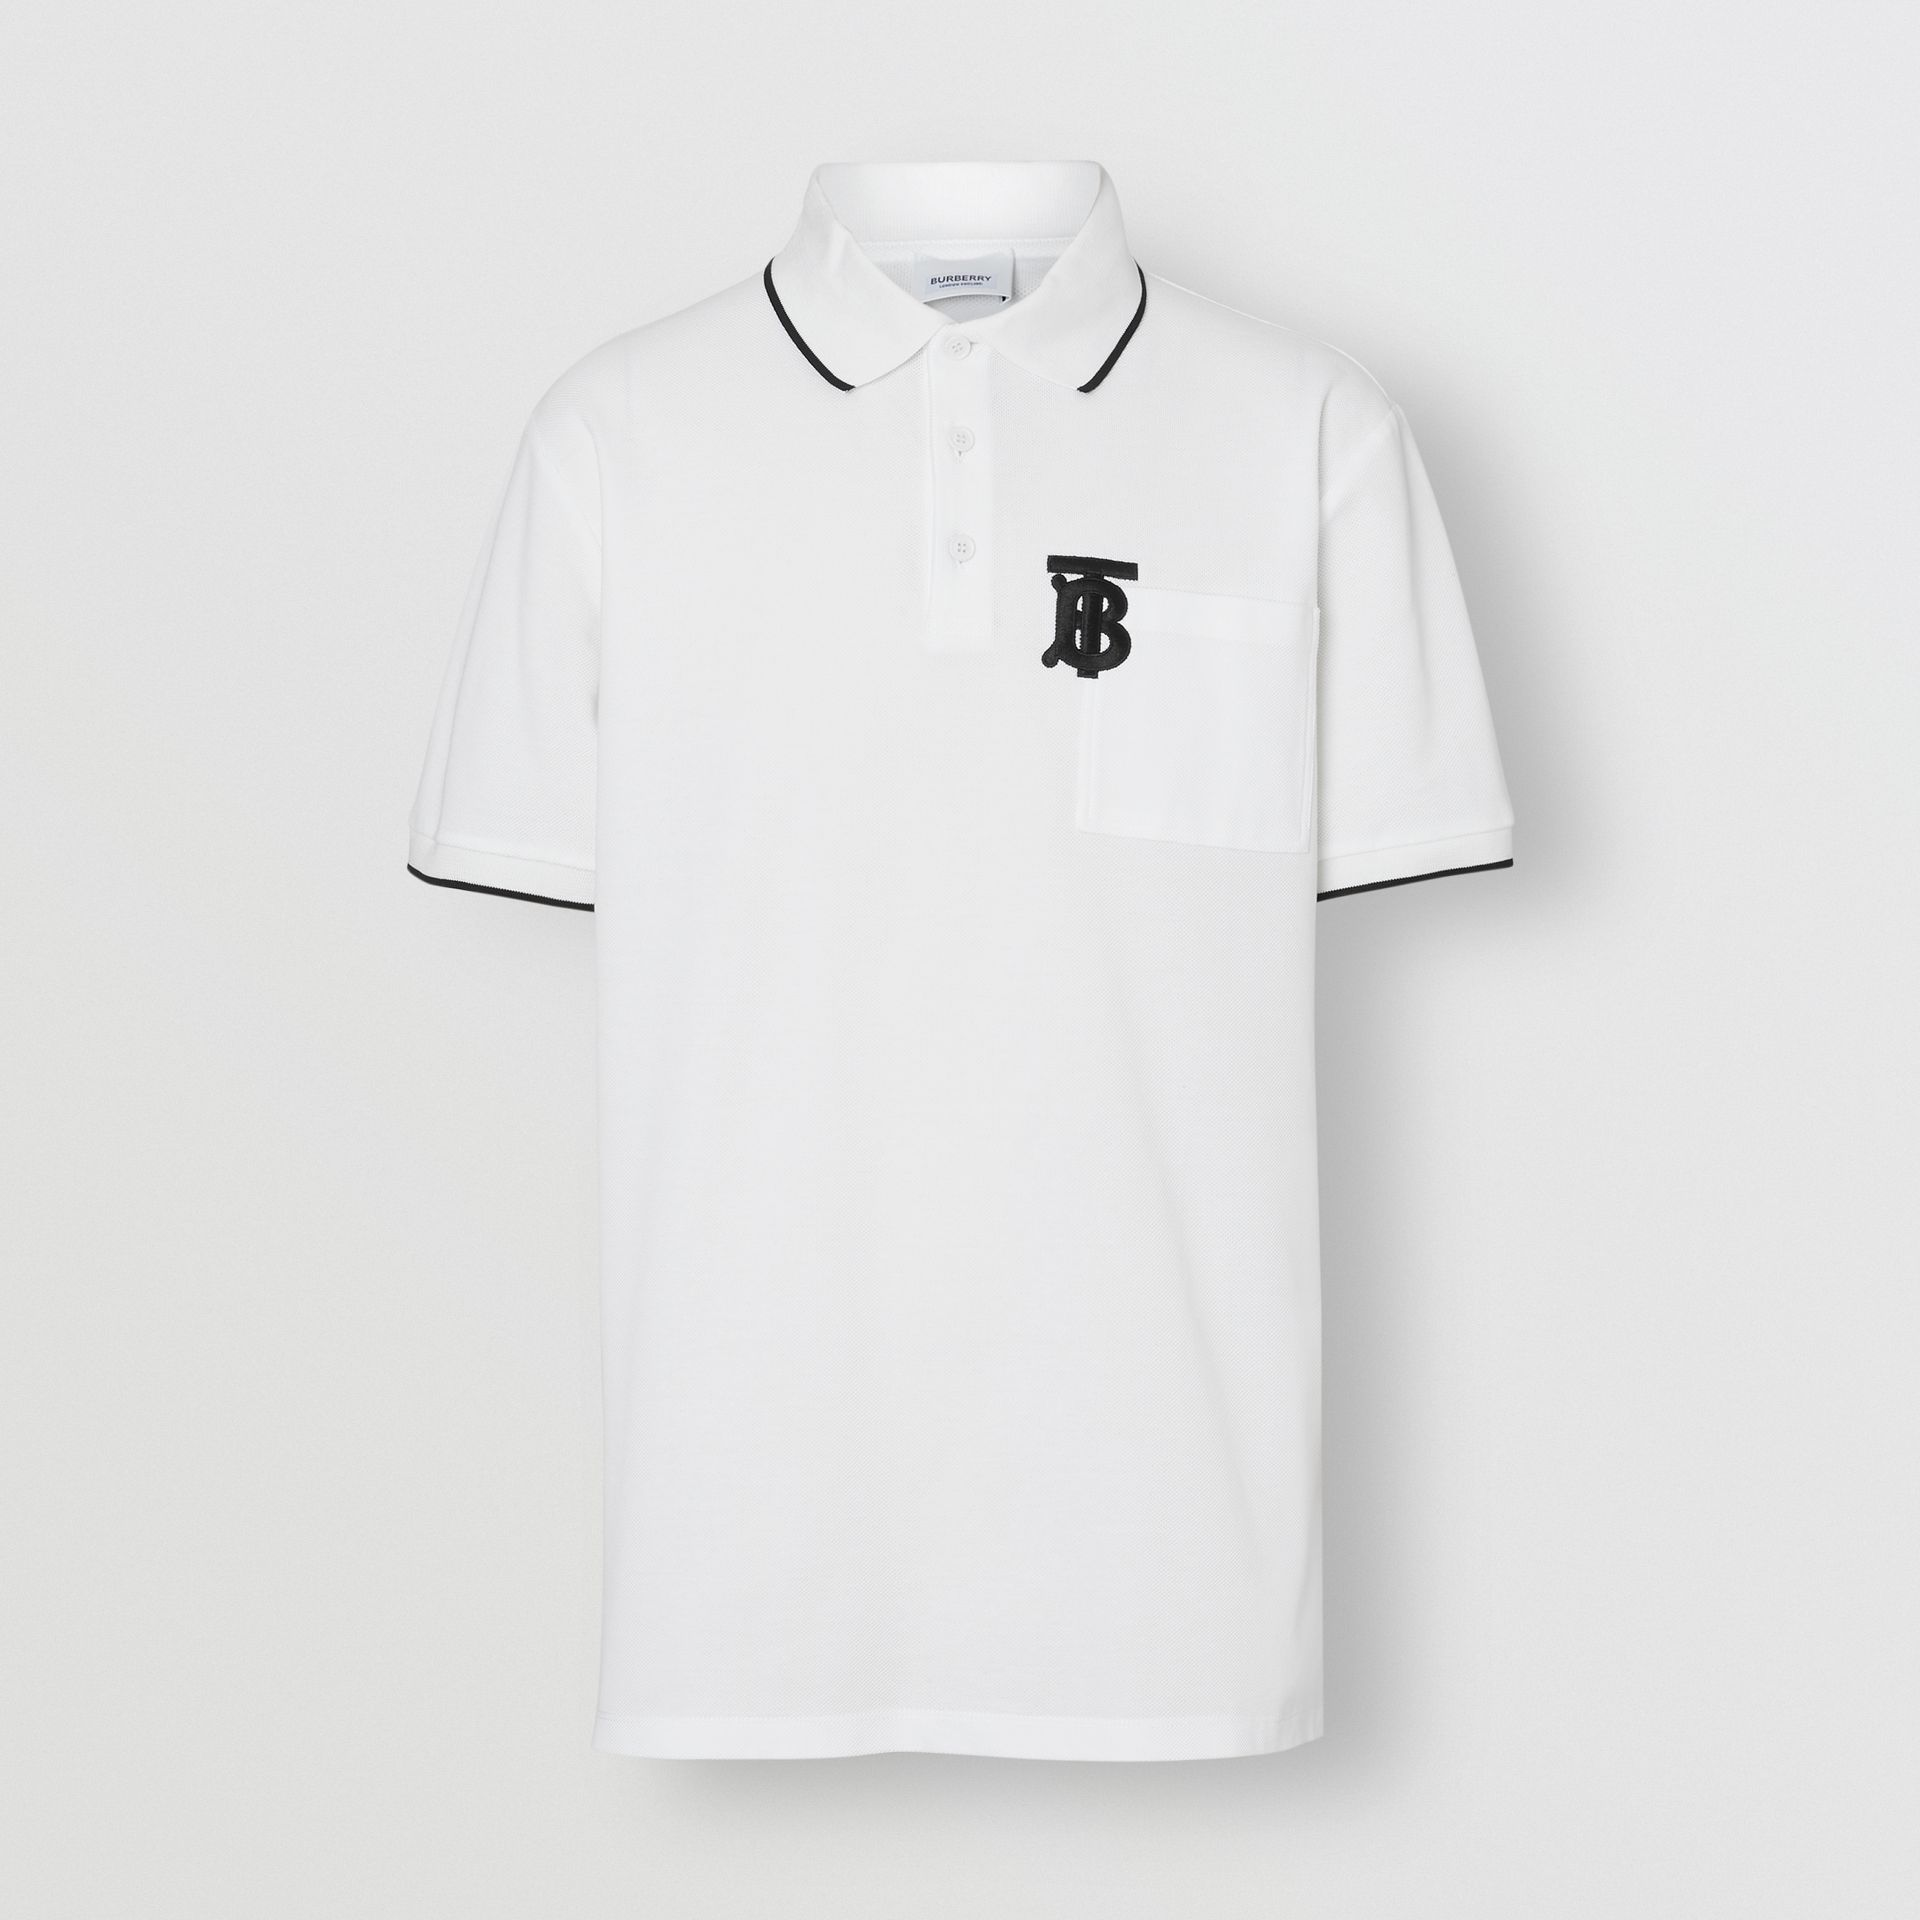 Monogram Motif Tipped Cotton Piqué Polo Shirt in White - Men | Burberry United Kingdom - gallery image 3